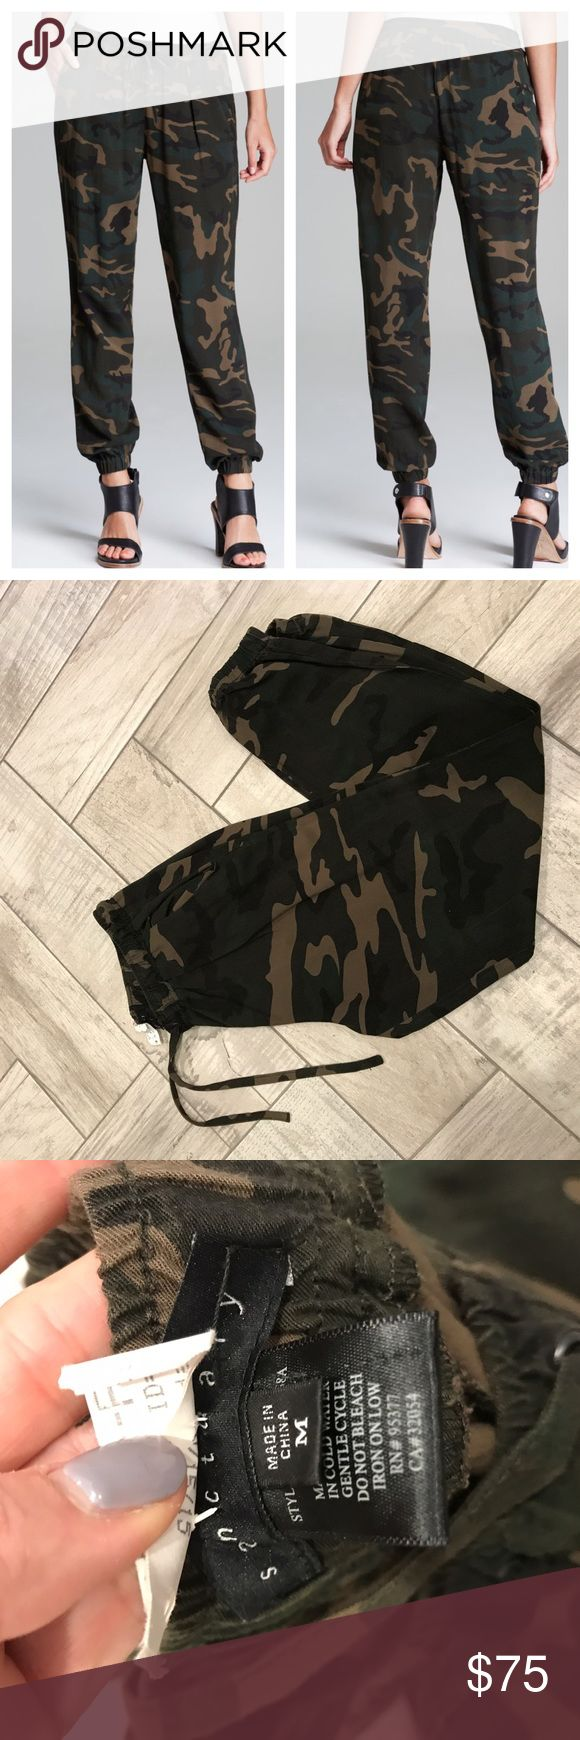 Sanctuary Camo Jogger Pants ❌NO LOW BALL offers❌ ✖️ no trades  🔵use offer button ✔️ price firm on items $25 or below ✔️please read descriptions and let me know if you need more info  Great used condition. Fit 27-29 best in my opinion. See press sheen from dry cleaner (will come out). Sanctuary Camouflage joggers are lightweight for summer and fall/winter trendy. Three seasons! Anthropologie Pants Track Pants & Joggers